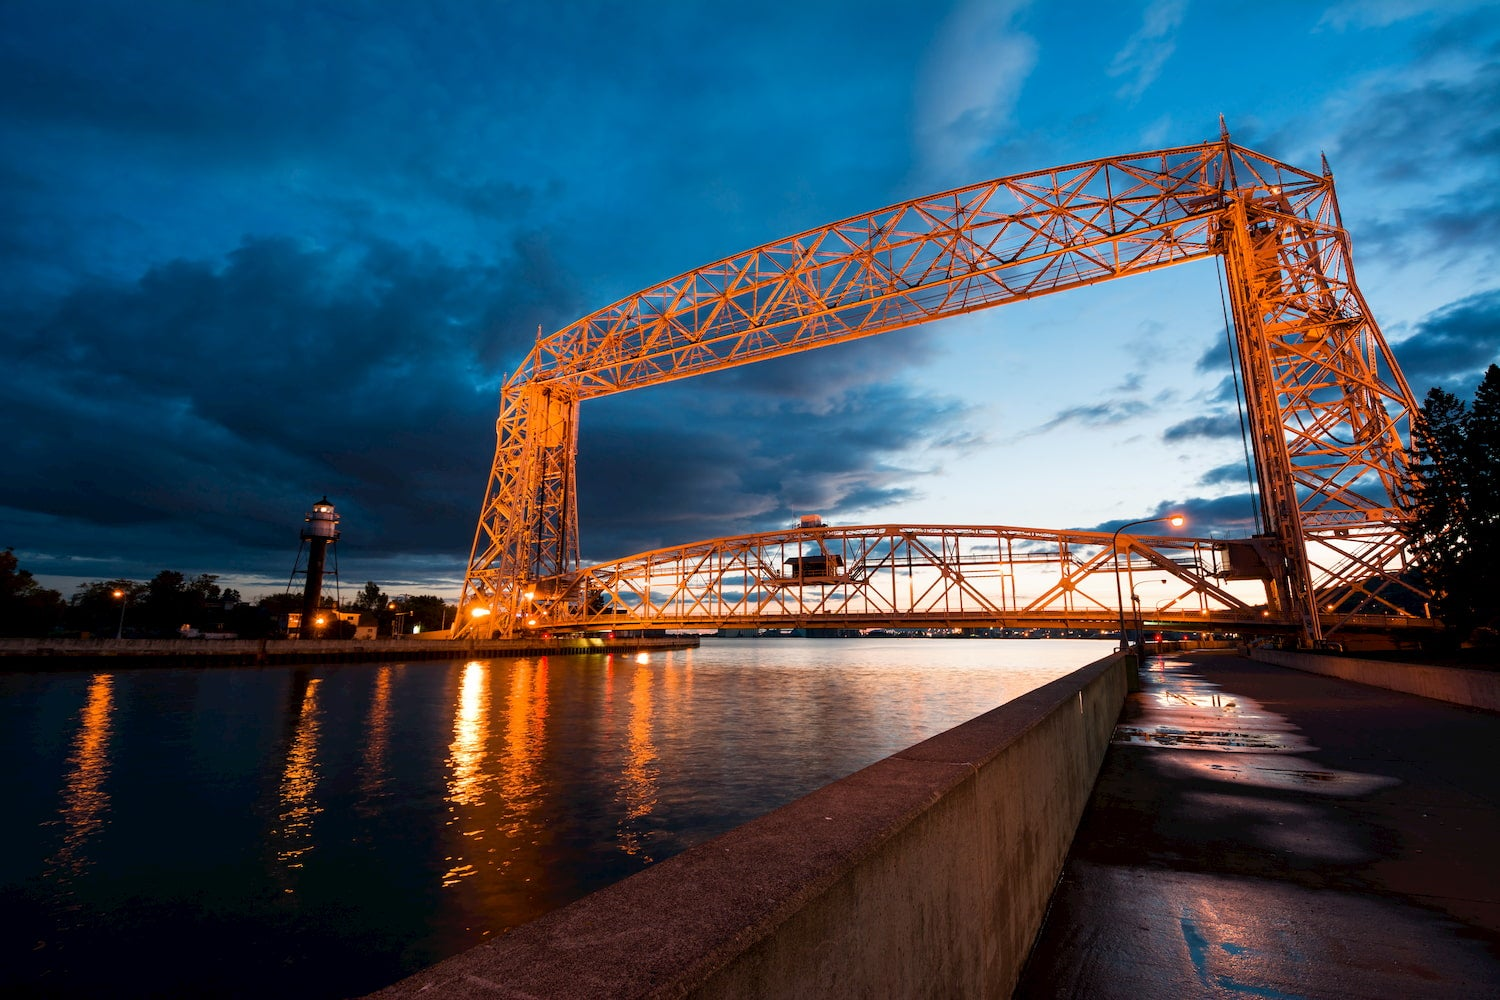 ariel lift bridge at sunset in duluth minnesota